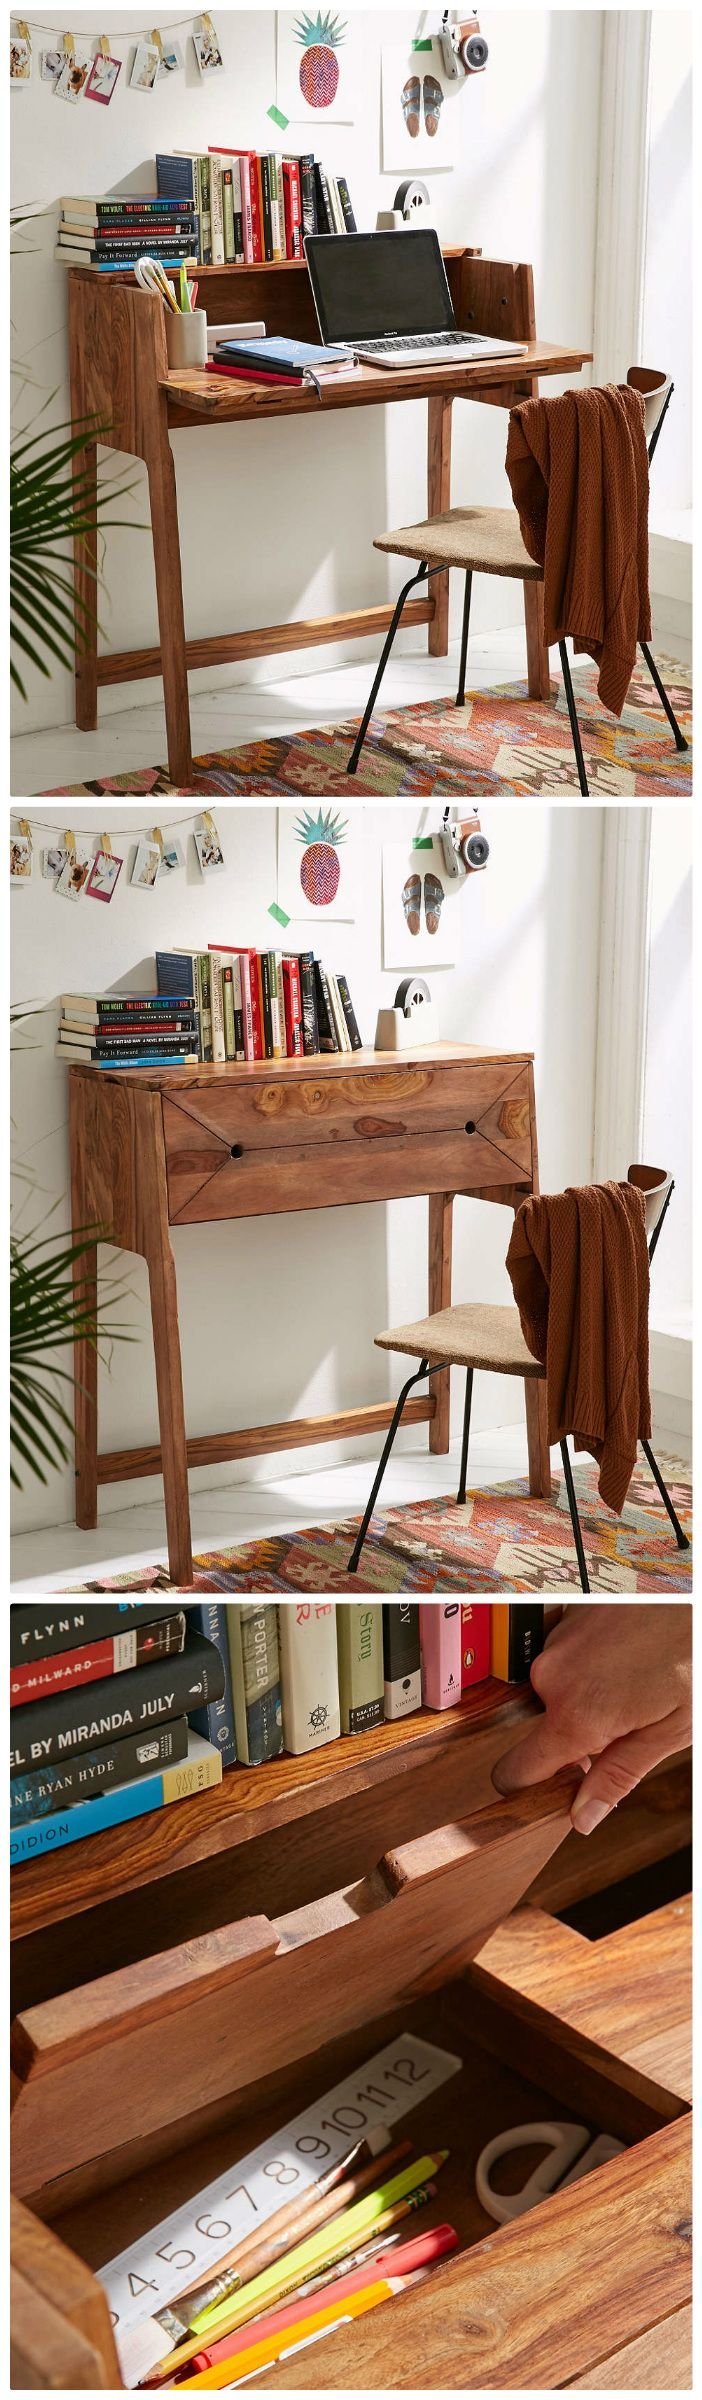 Captivating Ten Space Saving Desks That Work Great In Small Living Spaces